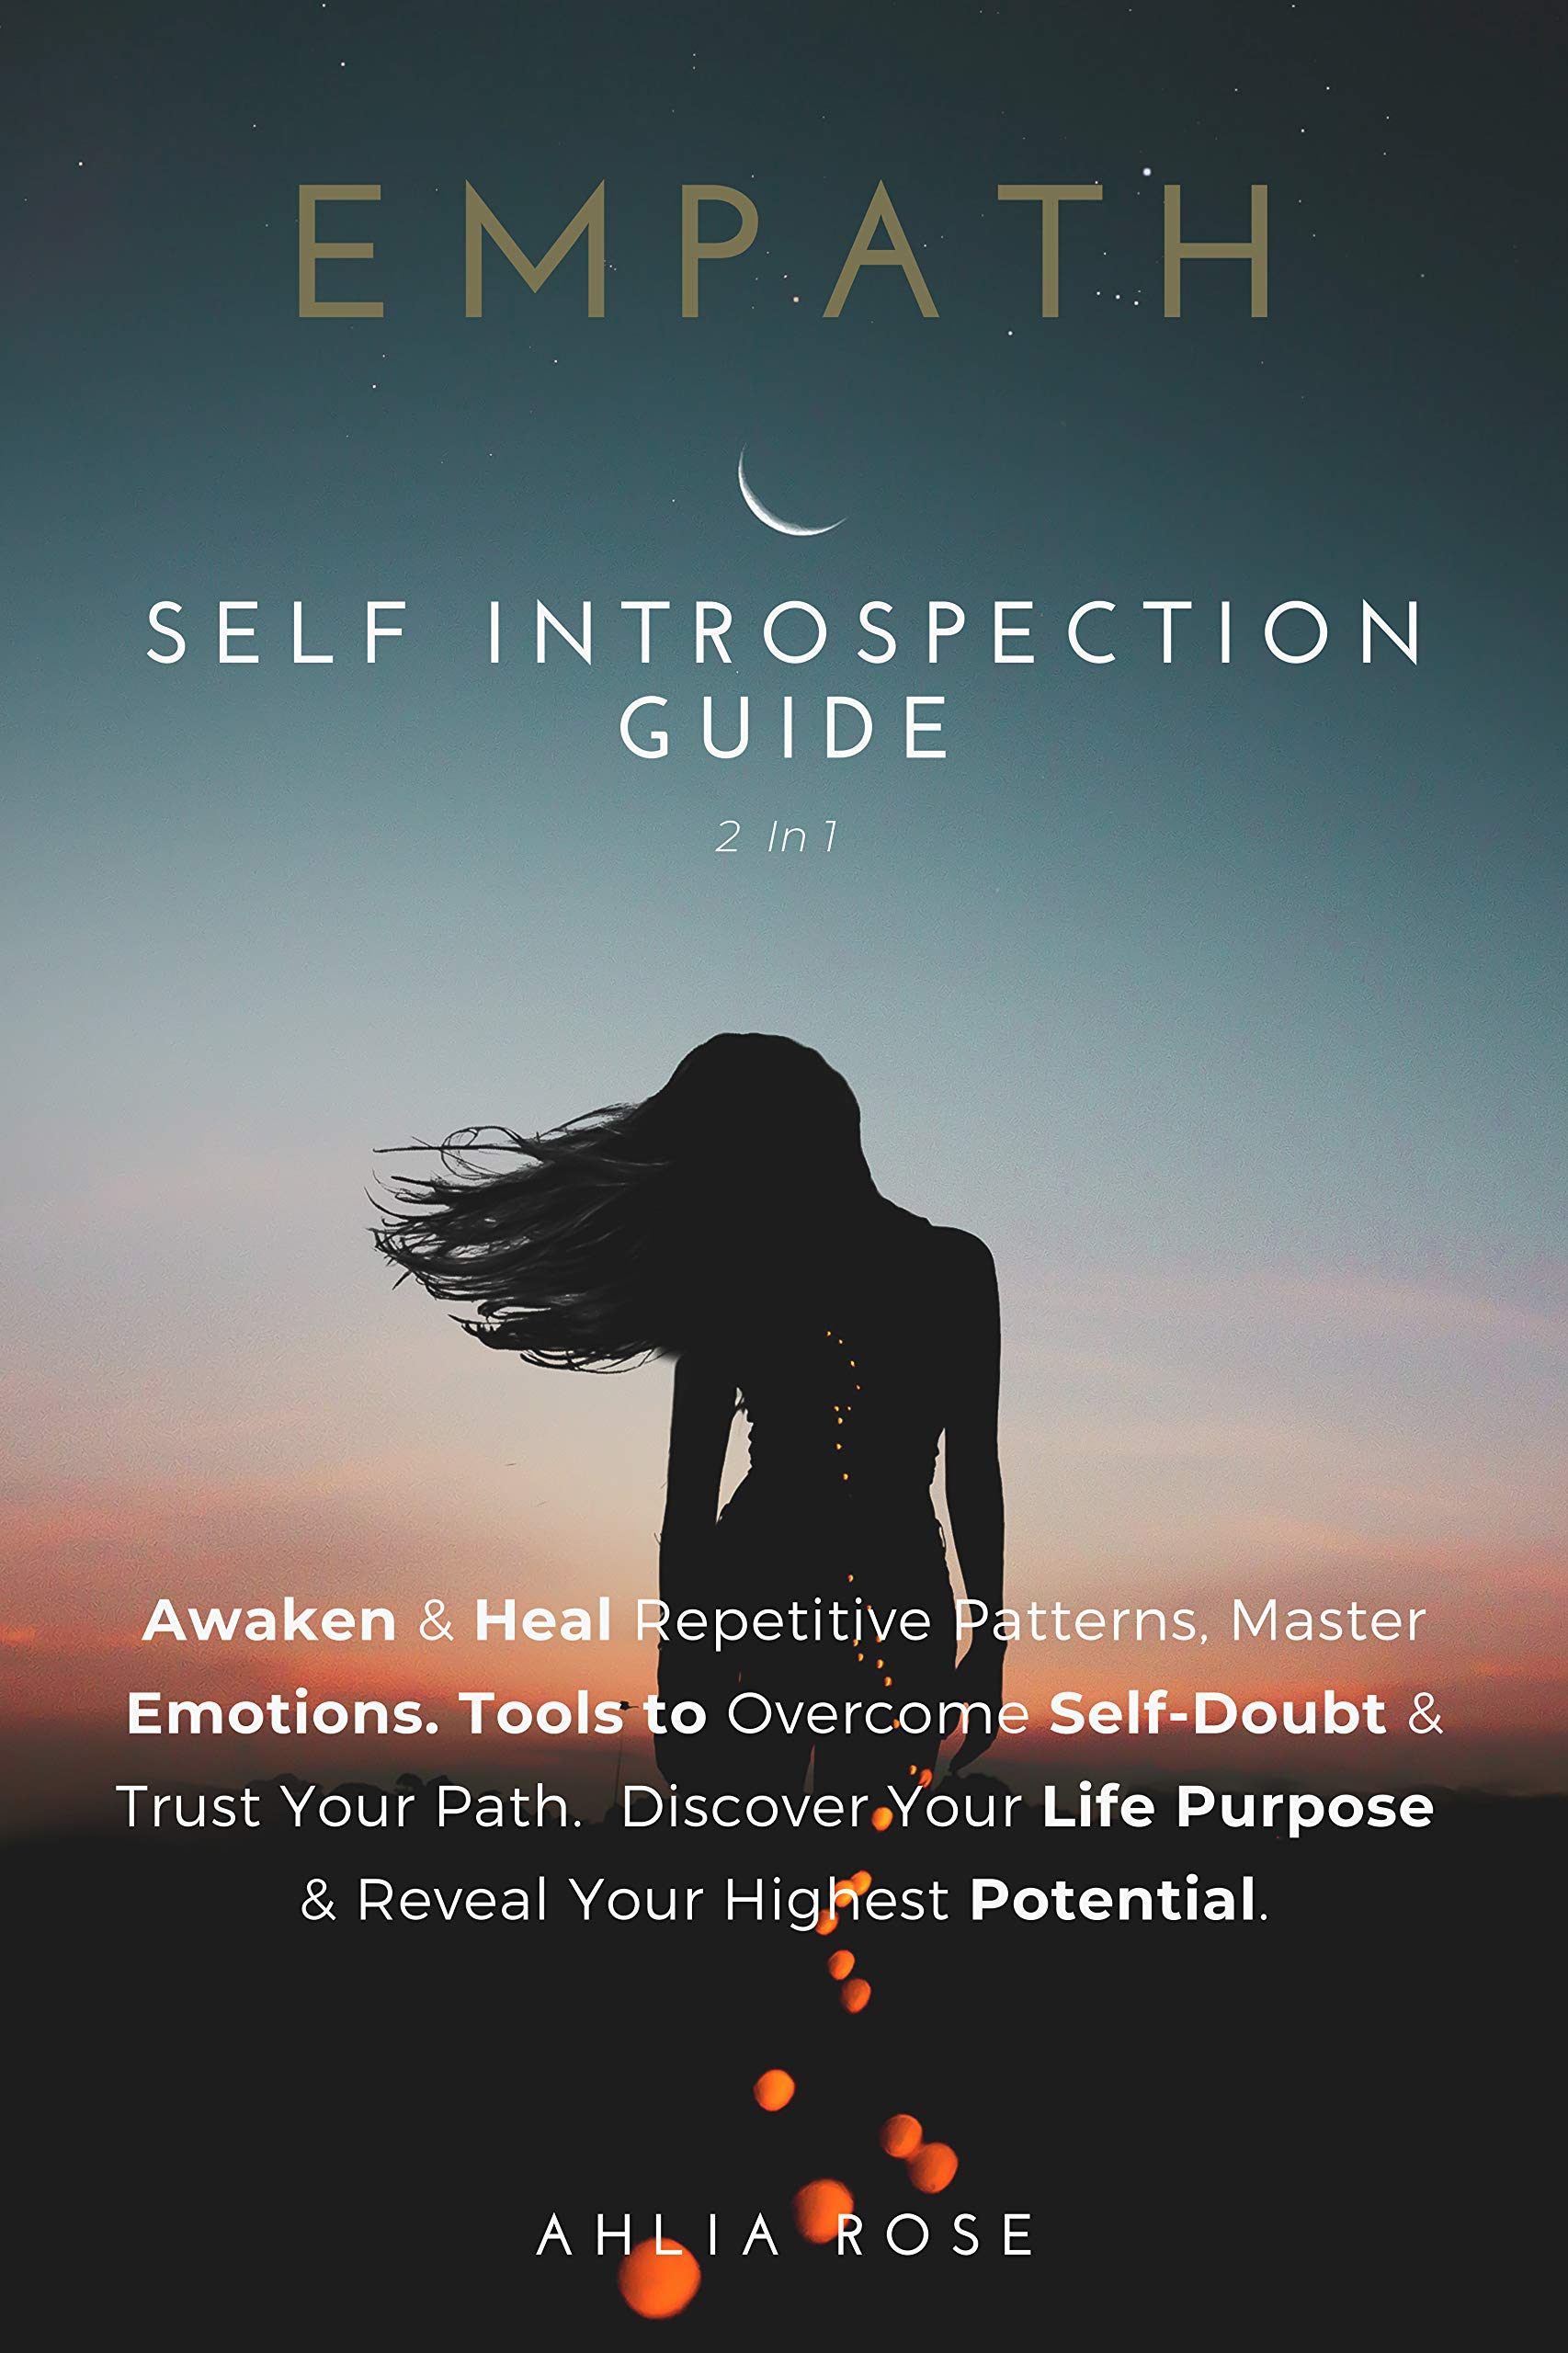 Empath Self Introspection Guide 2 in 1: Awaken & Heal Repetitive Patterns. Master Emotions, Tools to Overcome Self-Doubt & Trust Your Path. Discover Your Life Purpose & Reach Your Highest Potential